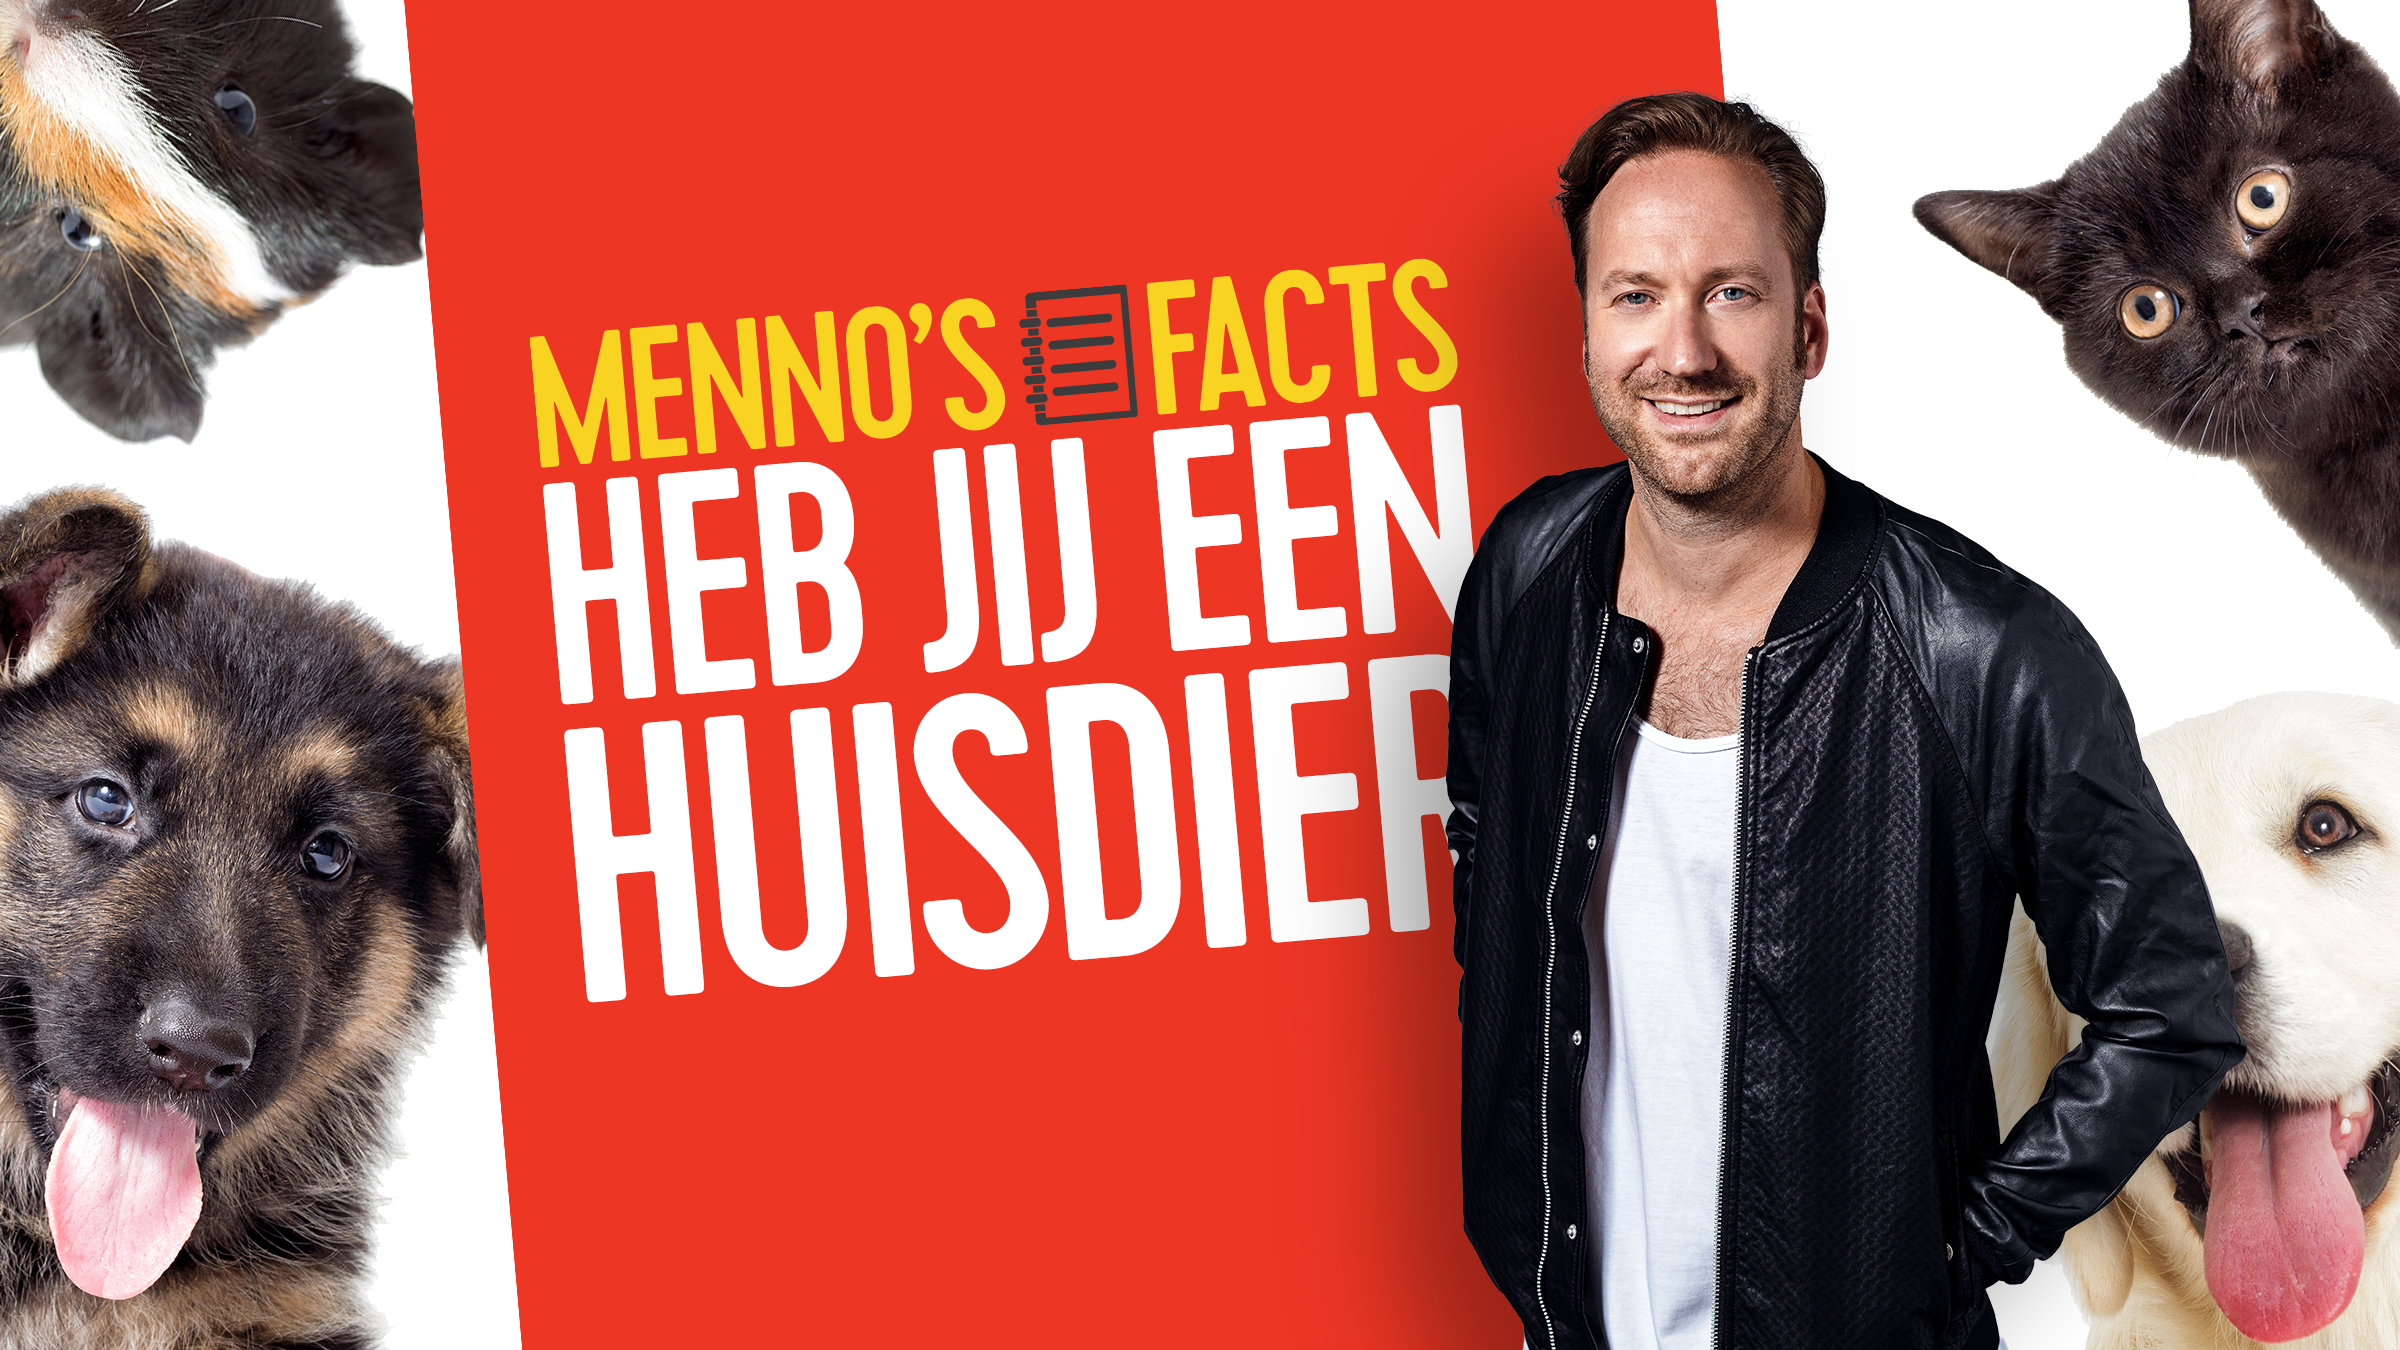 Huisdier teaser basis mennosfacts17